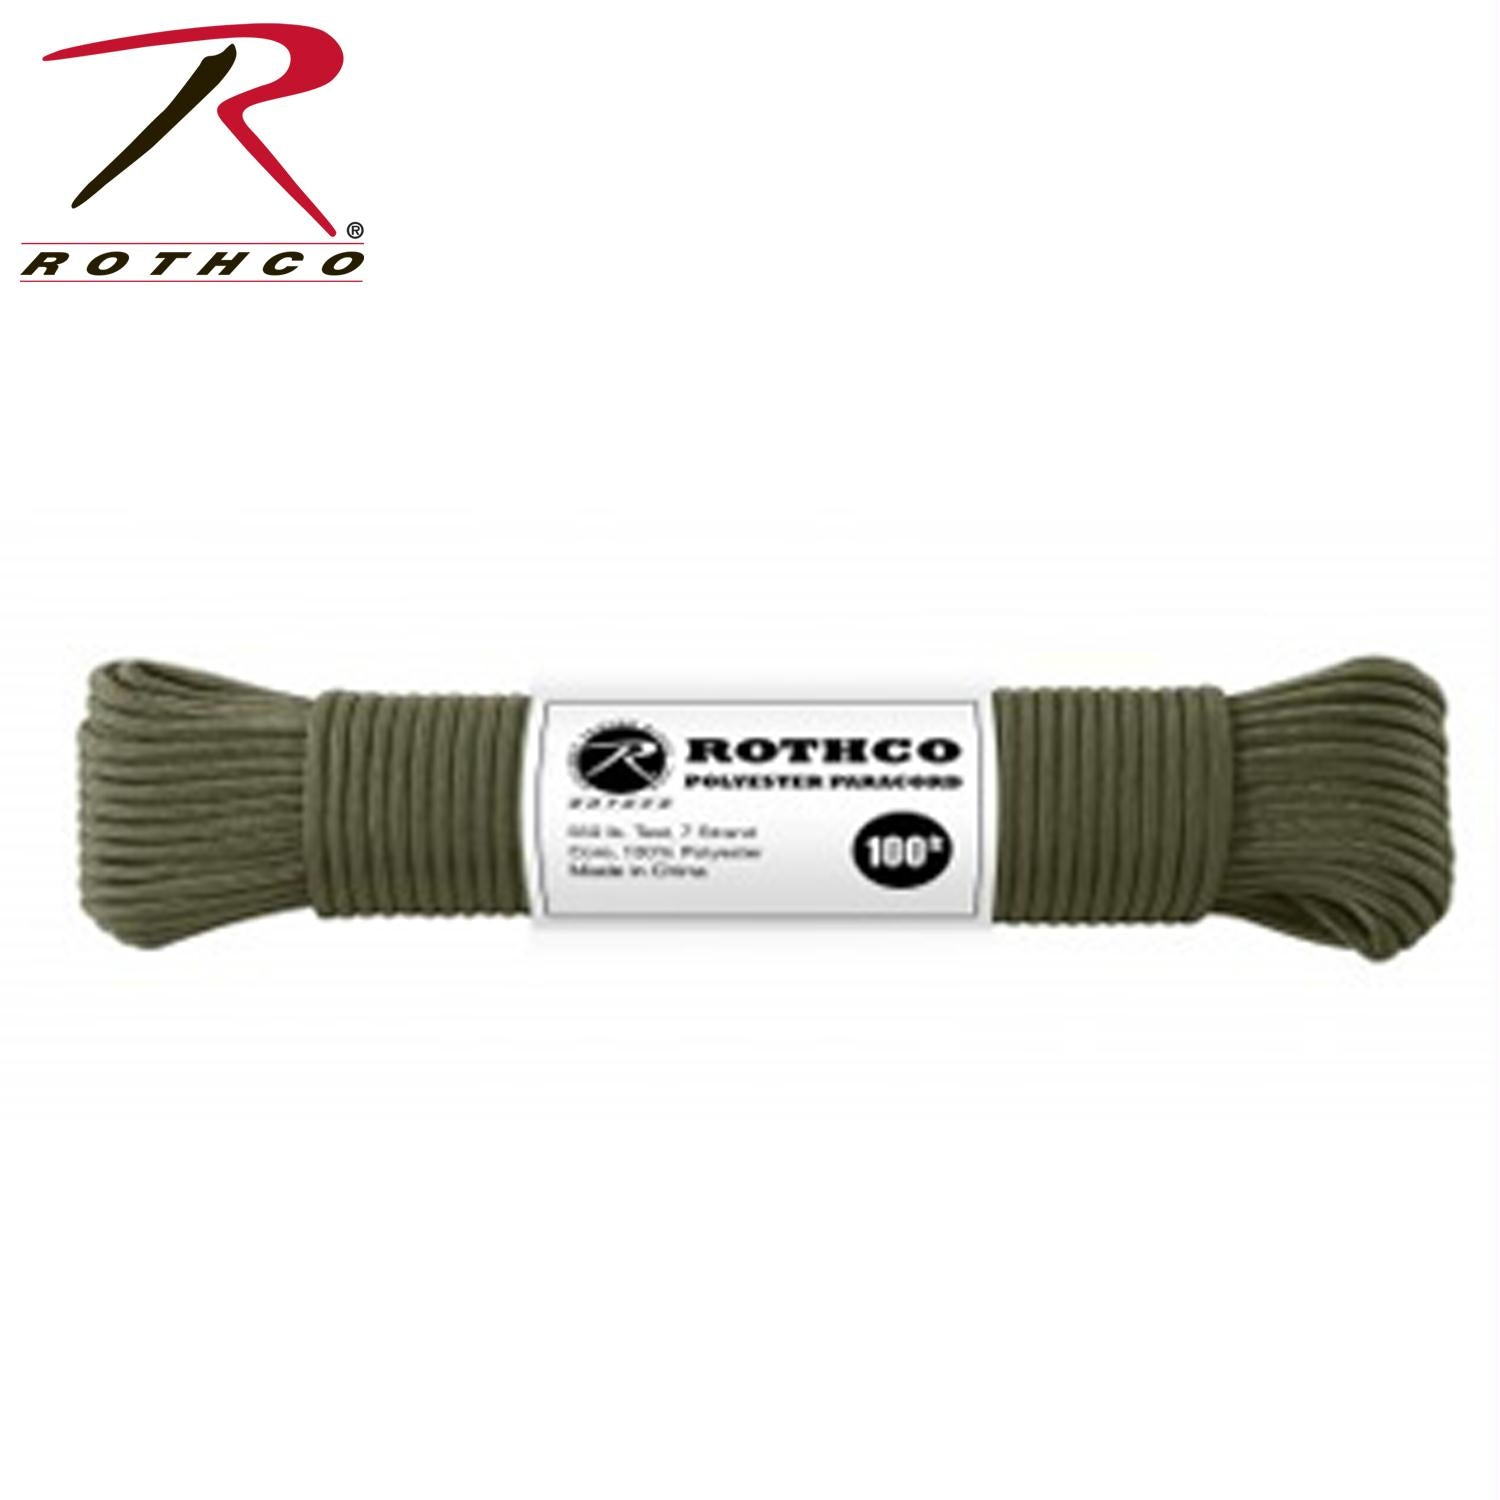 Rothco Polyester Paracord - Olive Drab / 50'